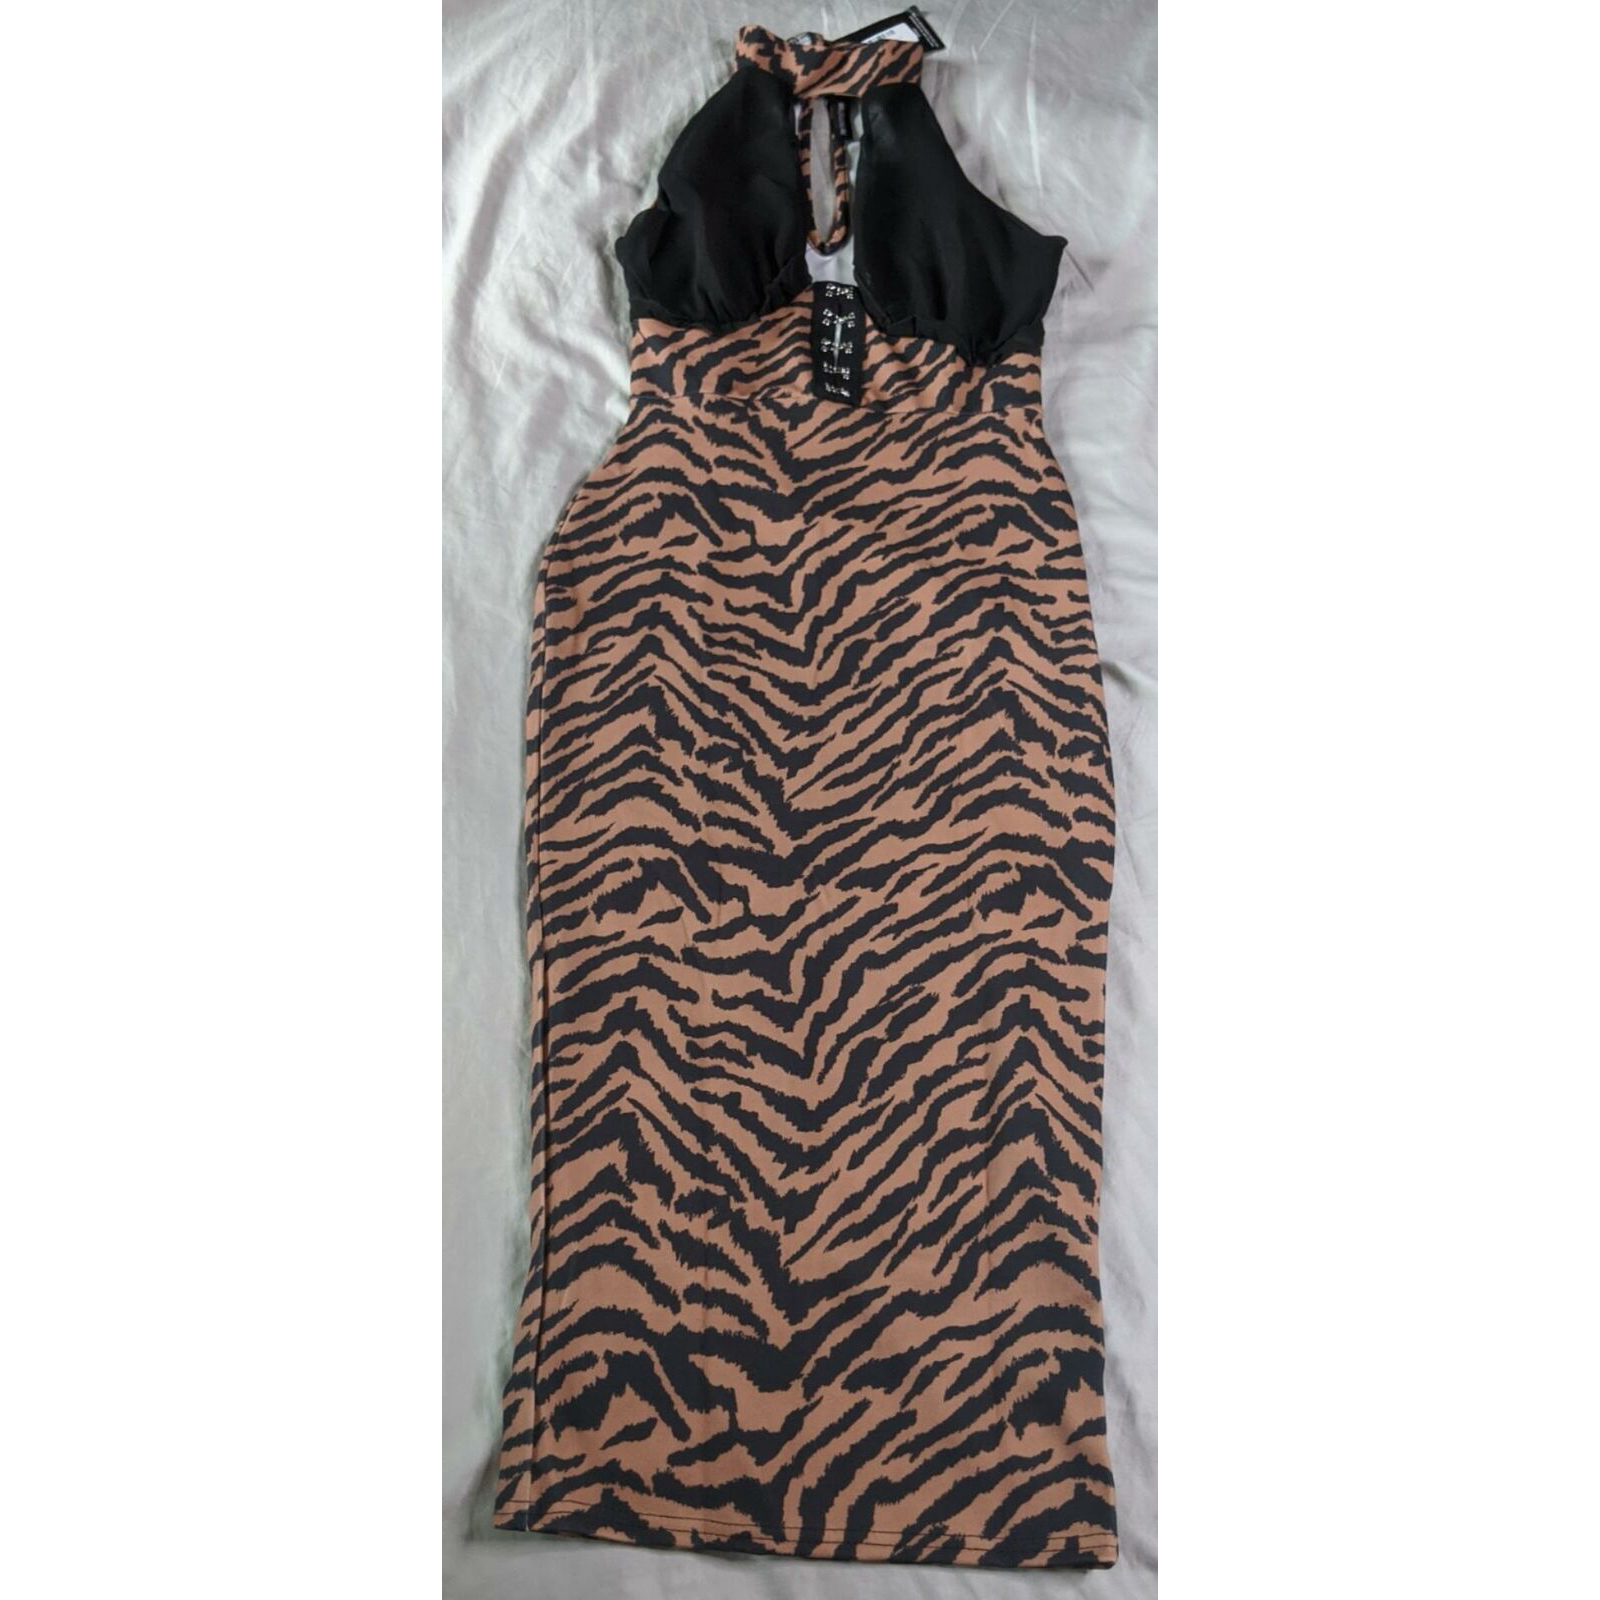 Product Image 1 - Pretty Little Thing Women's Tiger